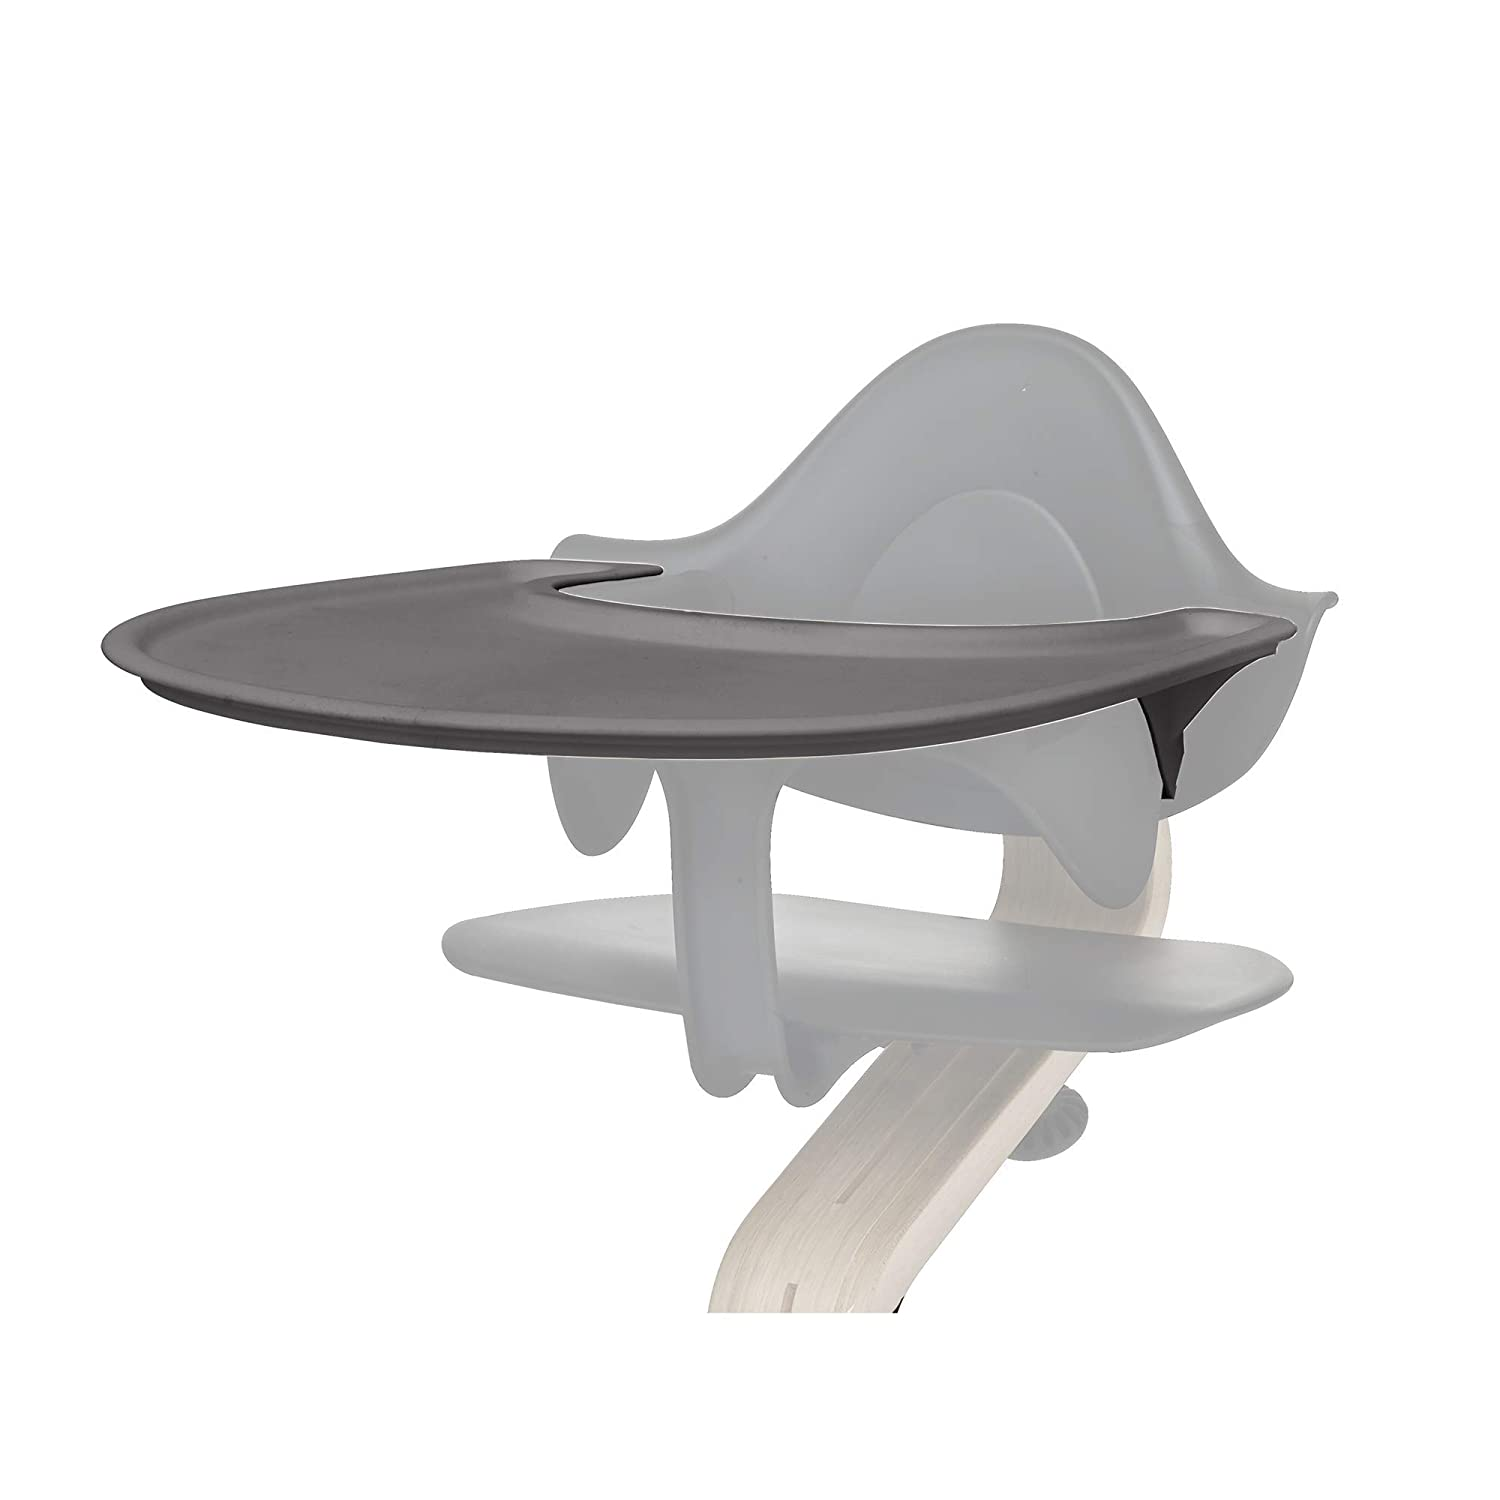 Coffee Easy to Clean Accessory for use with the Award Winning Nomi High Chair Tray by Evomove